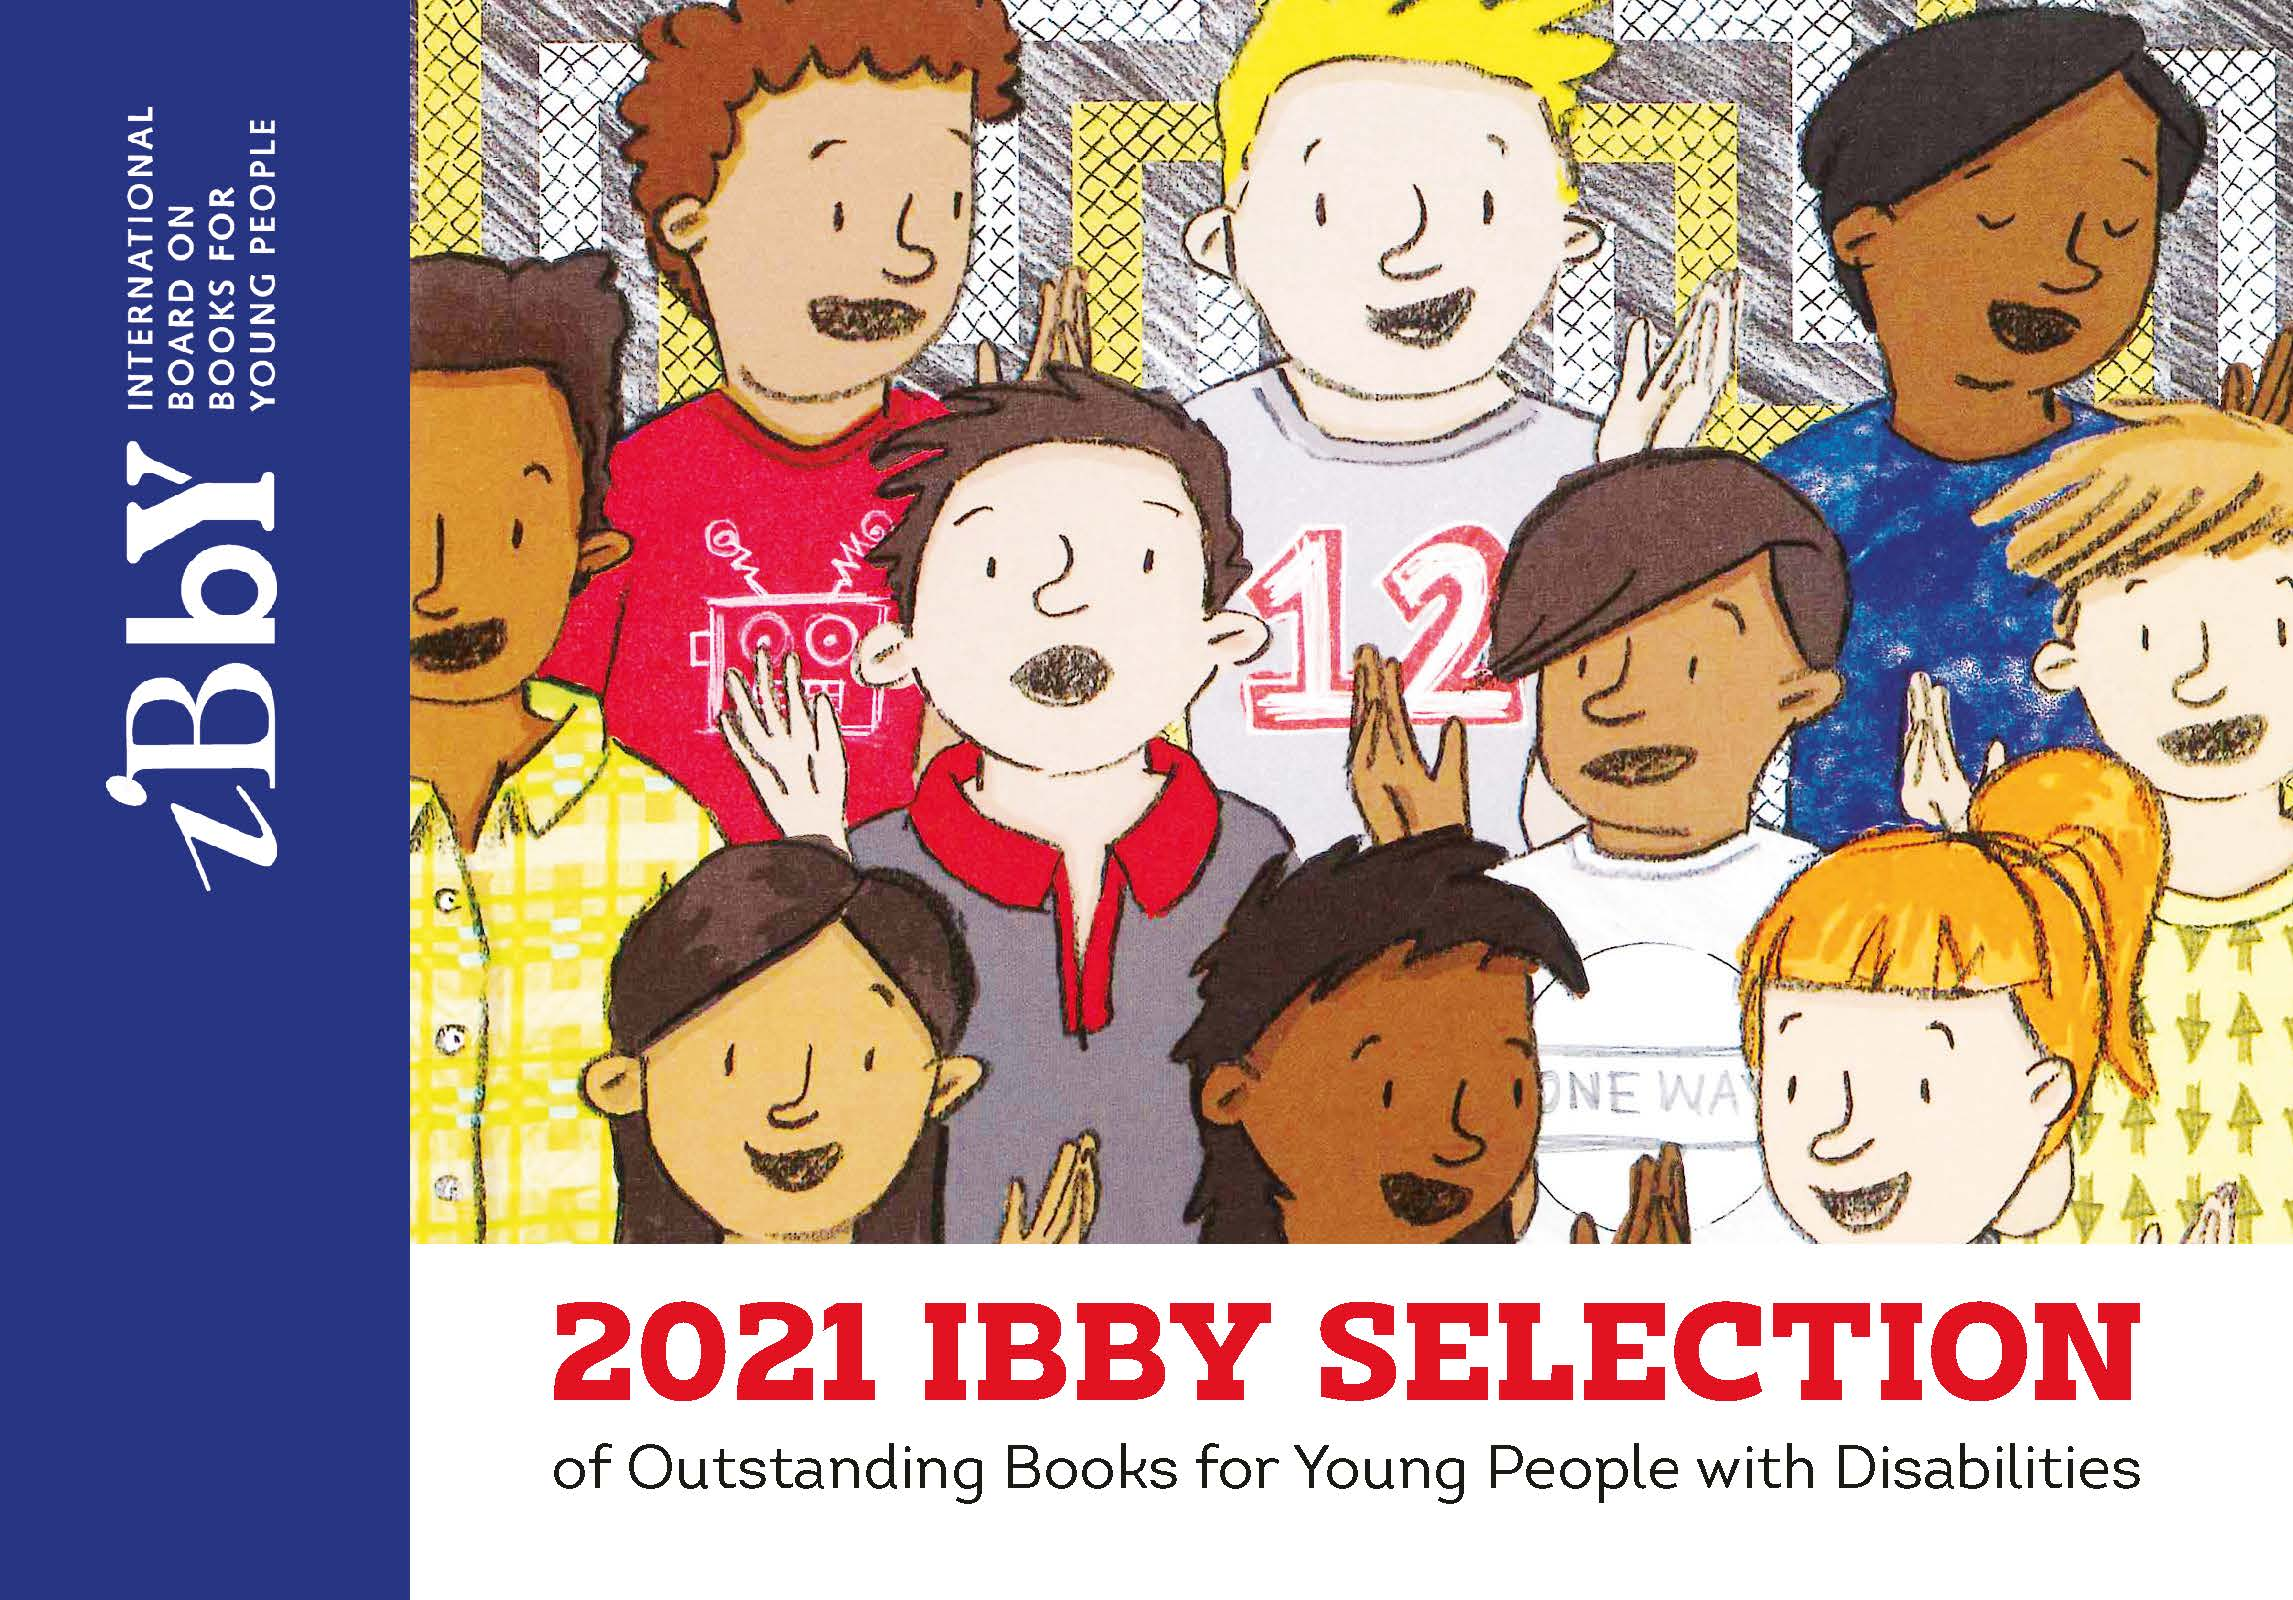 Image of artists on stage for Ibby Honour List